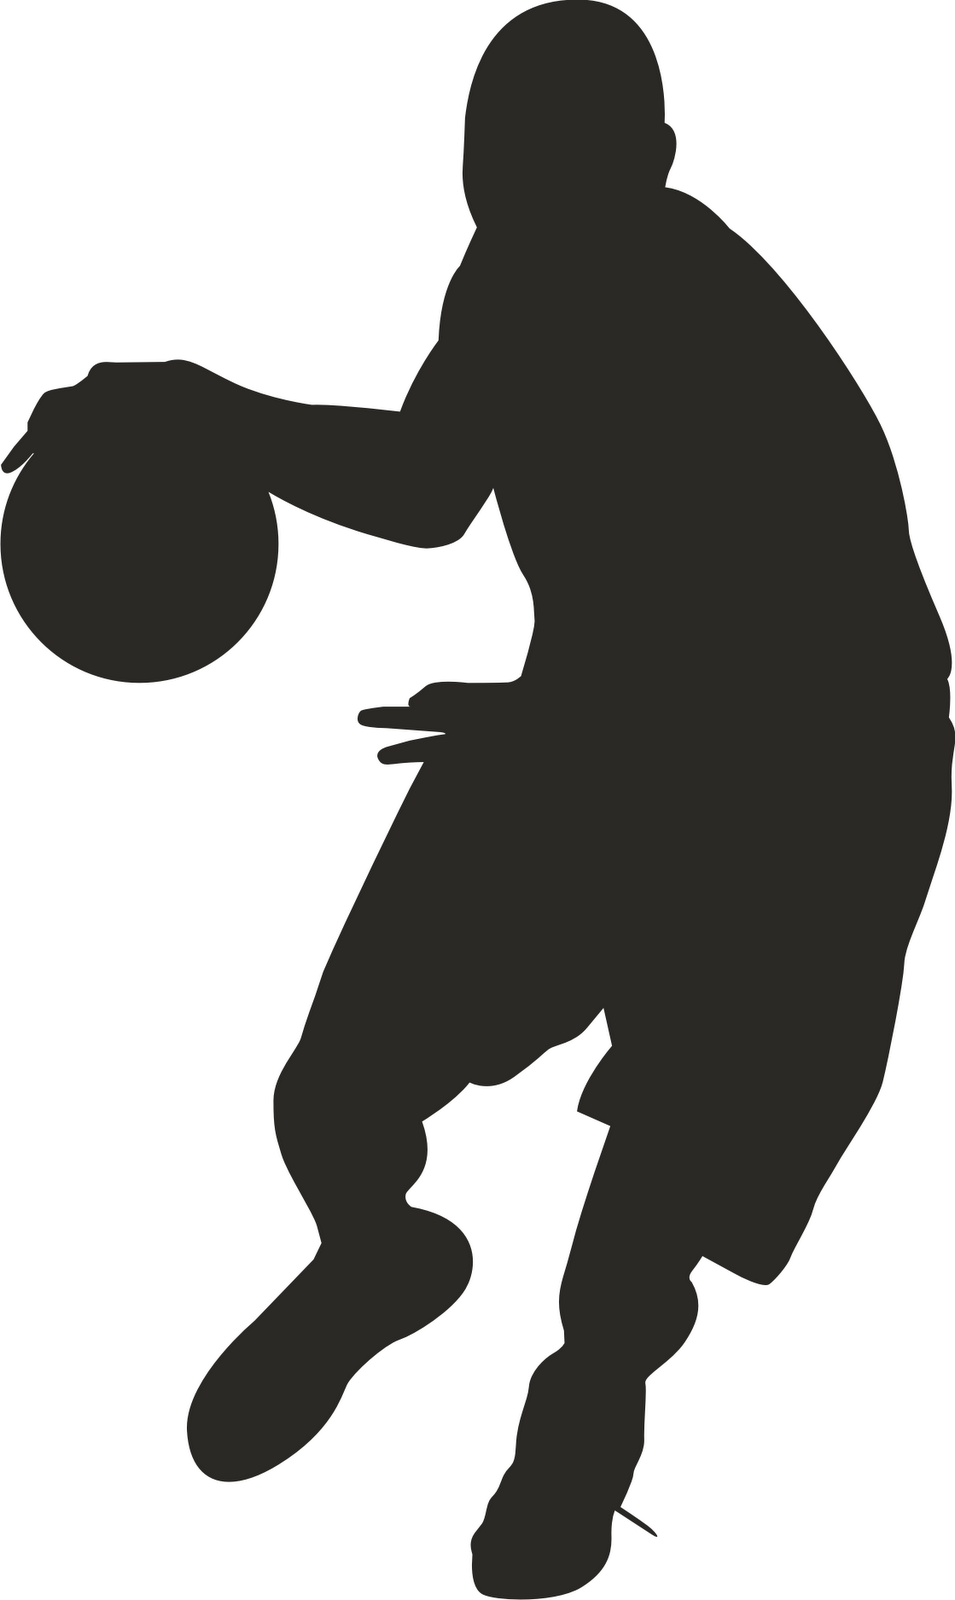 Basketball Player Clipart | Clip Art Pin